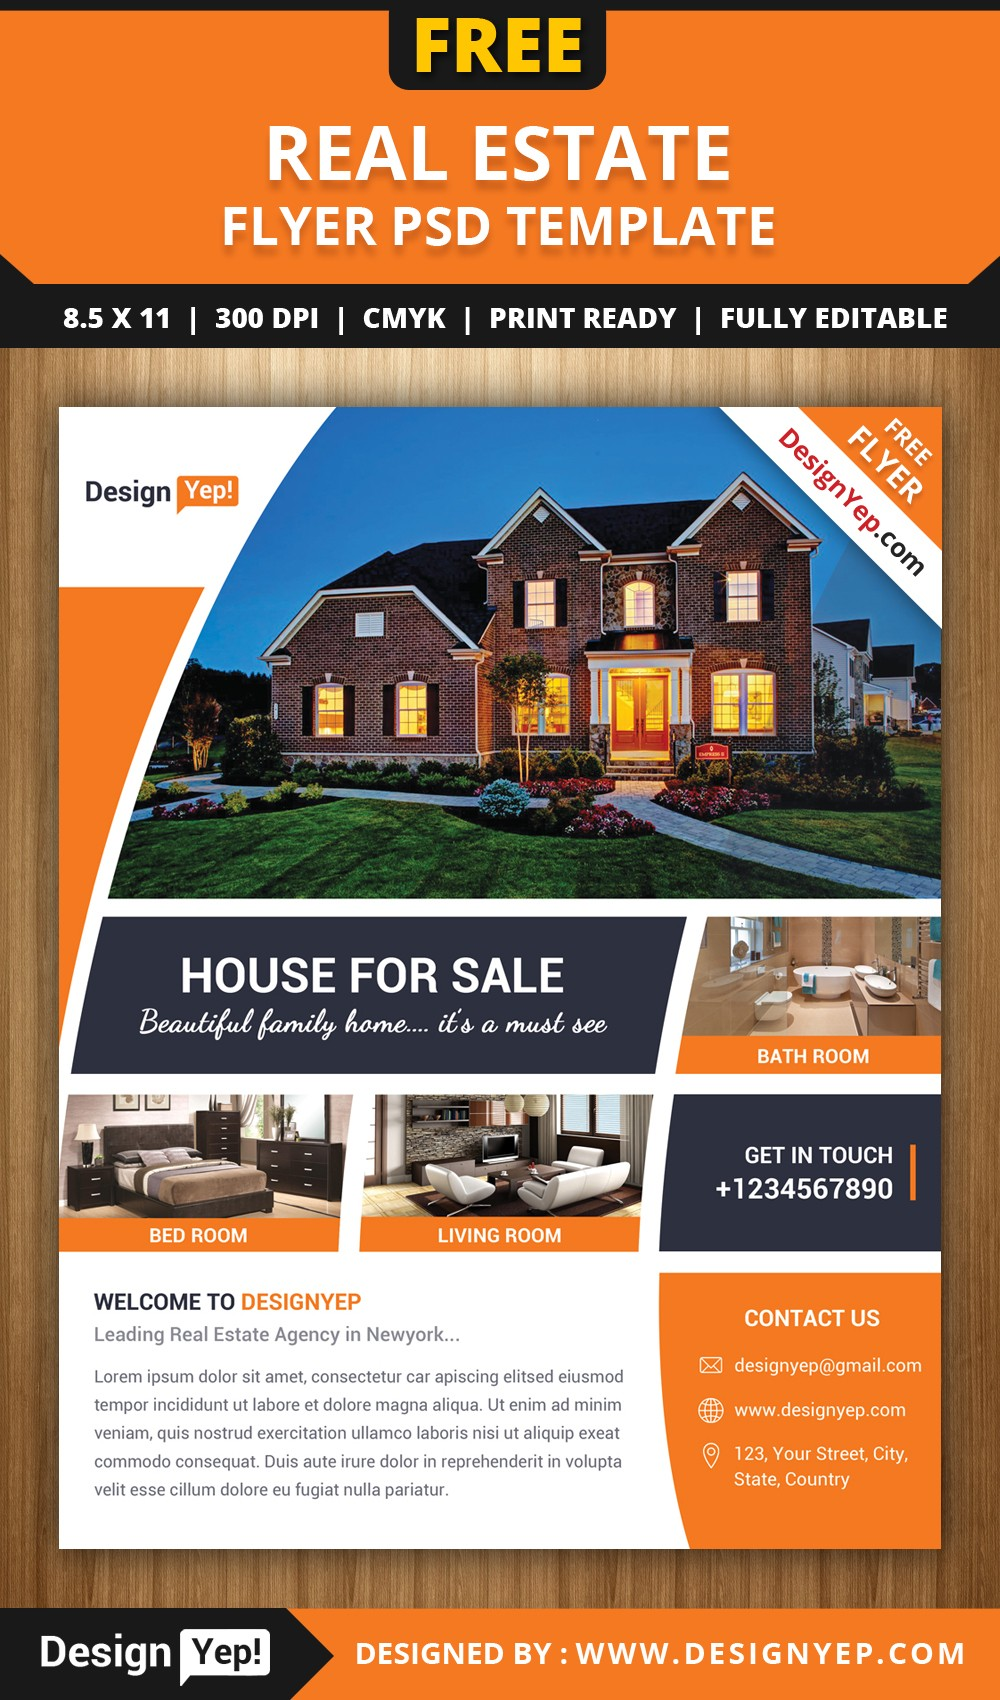 real estate flyer template free  Free Real Estate Flyer PSD Template - DesignYep - real estate flyer template free